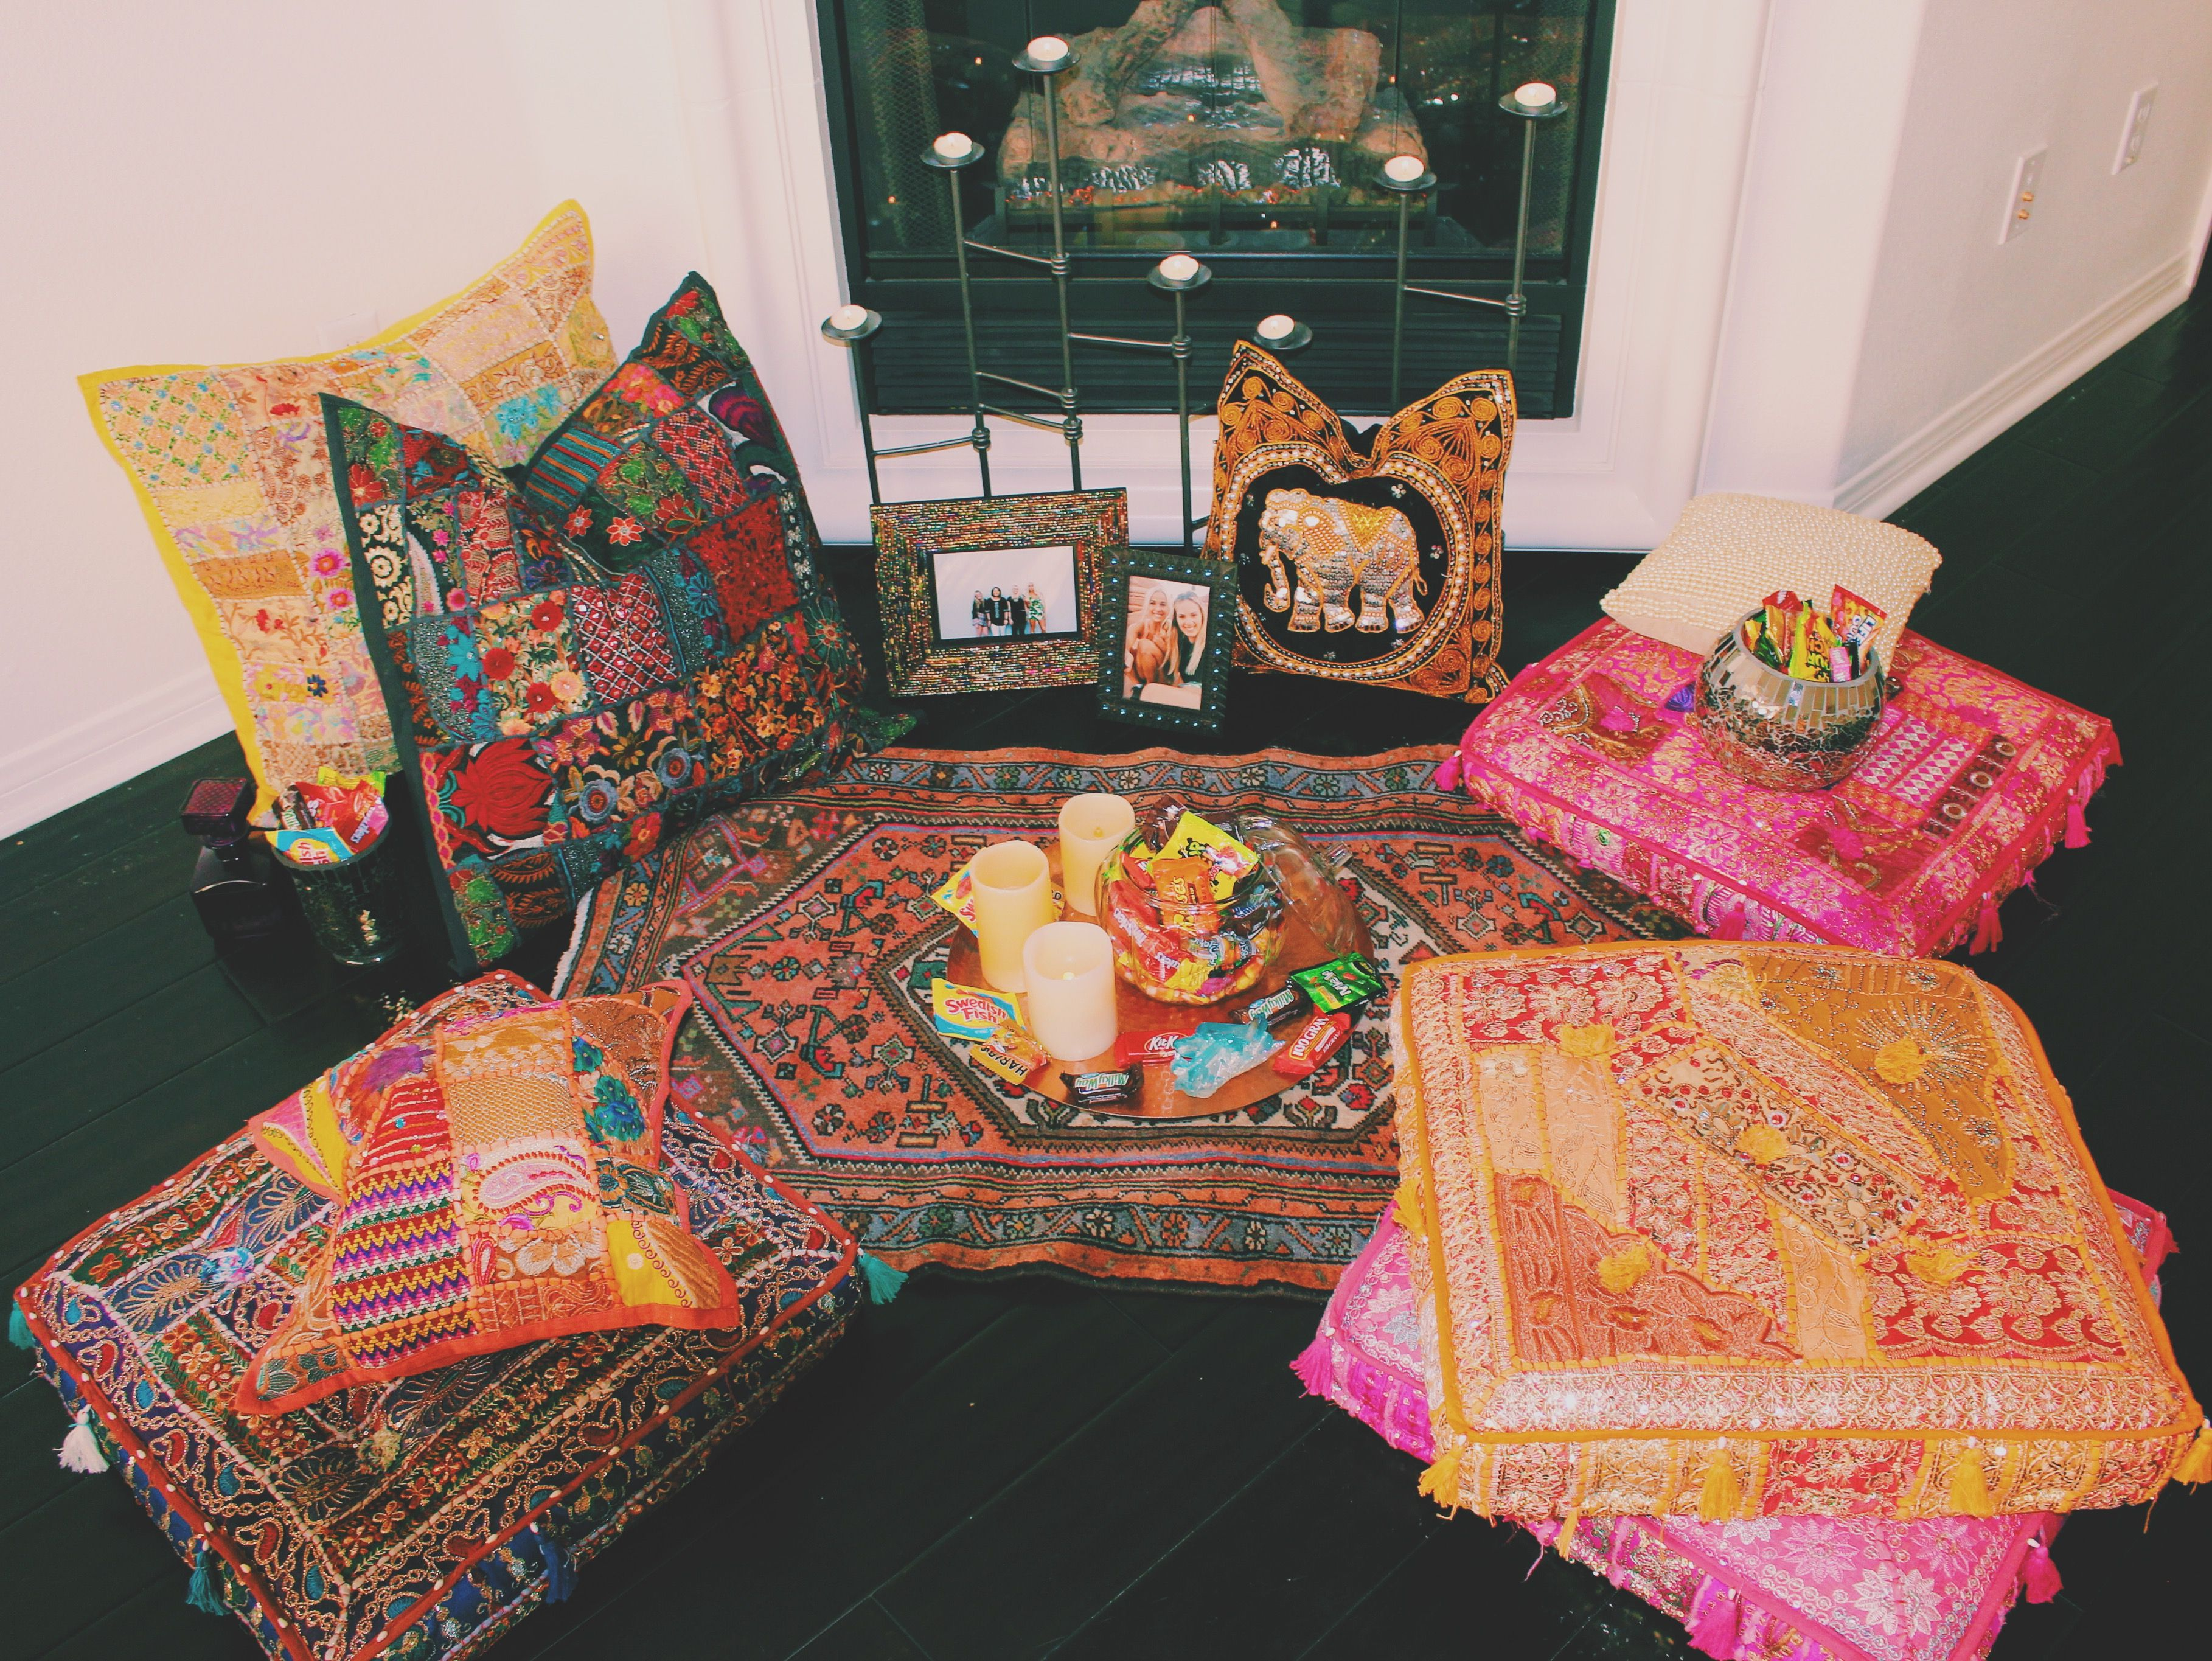 Bohemian Bedroom Inspiration✨Claire Bloom & Lady Soverign Pillow Covers from Lady Scorpio☽ ✩ Save 25% off all orders with code PINTERESTXO at checkout | Bohemian Tapestry Candy Boho Pillow Case Decor by Lady Scorpio | Shop Now LadyScorpio101.com | Interior Design by Kaitlyn Johnson @kaitlynjohnsondesign | @LadyScorpio101